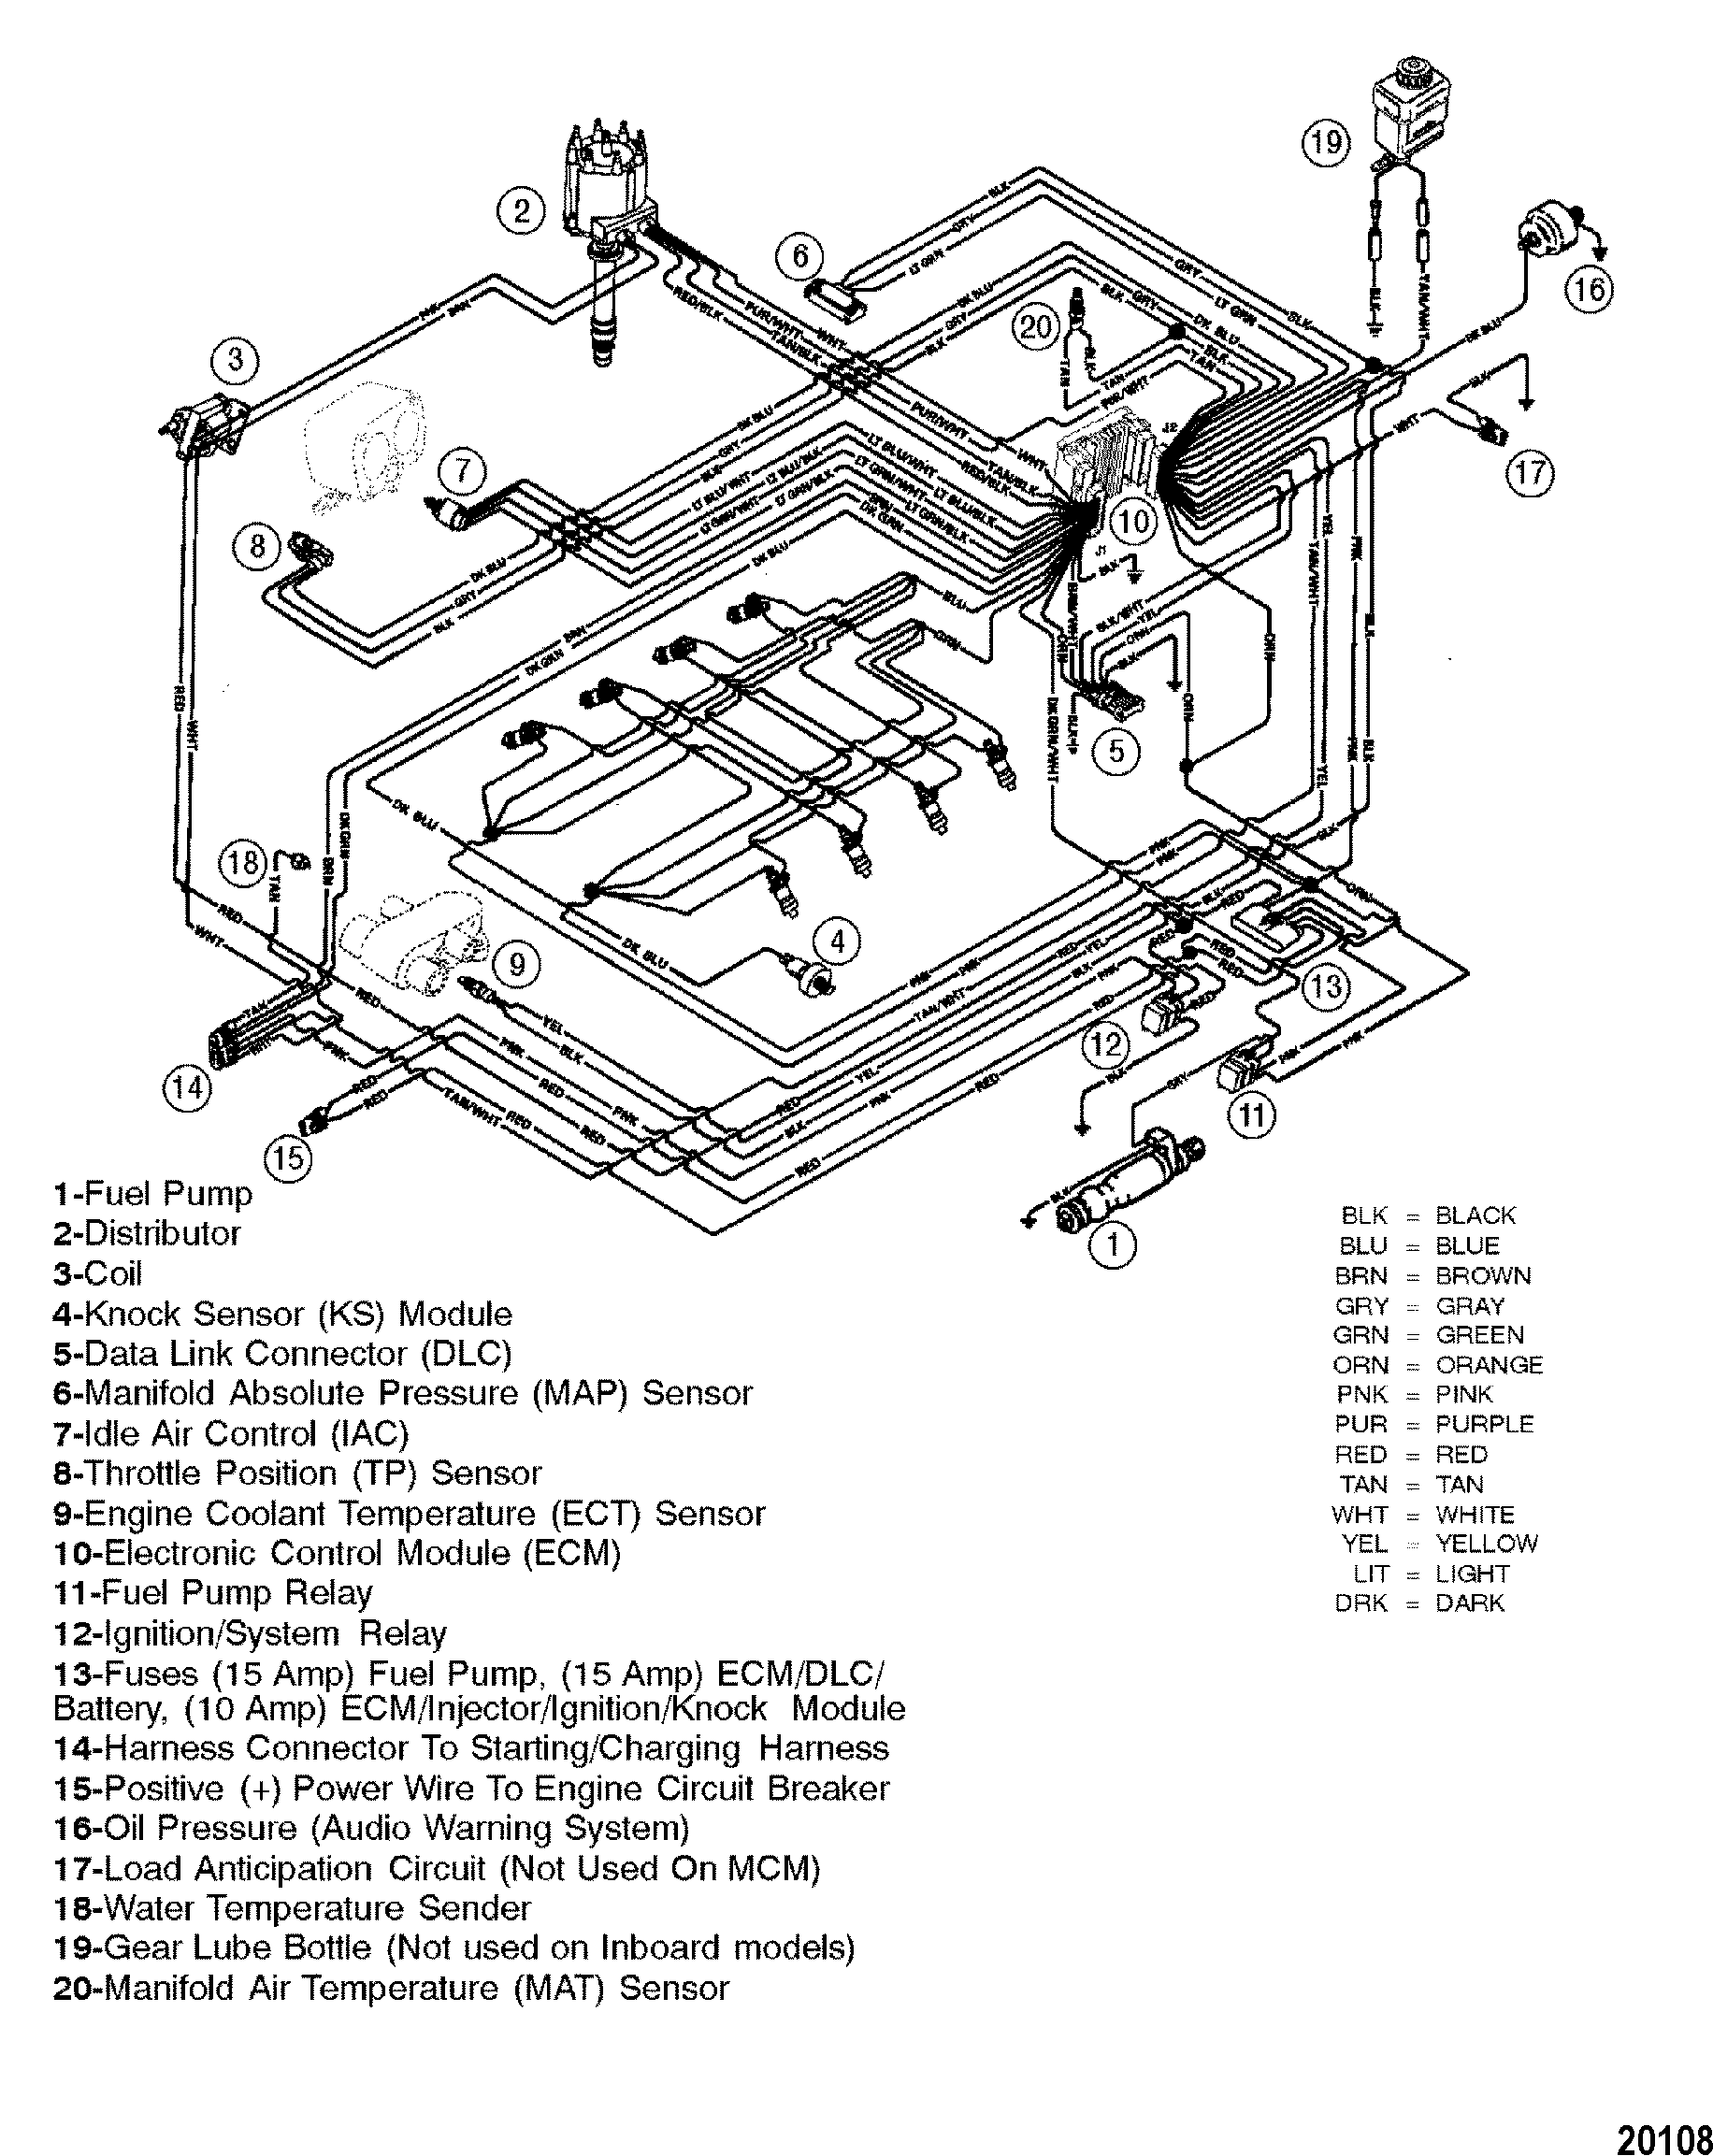 place diverter wiring diagram wiring diagram wiring a homeline service panel place diverter wiring diagram wiring libraryplace diverter wiring diagram